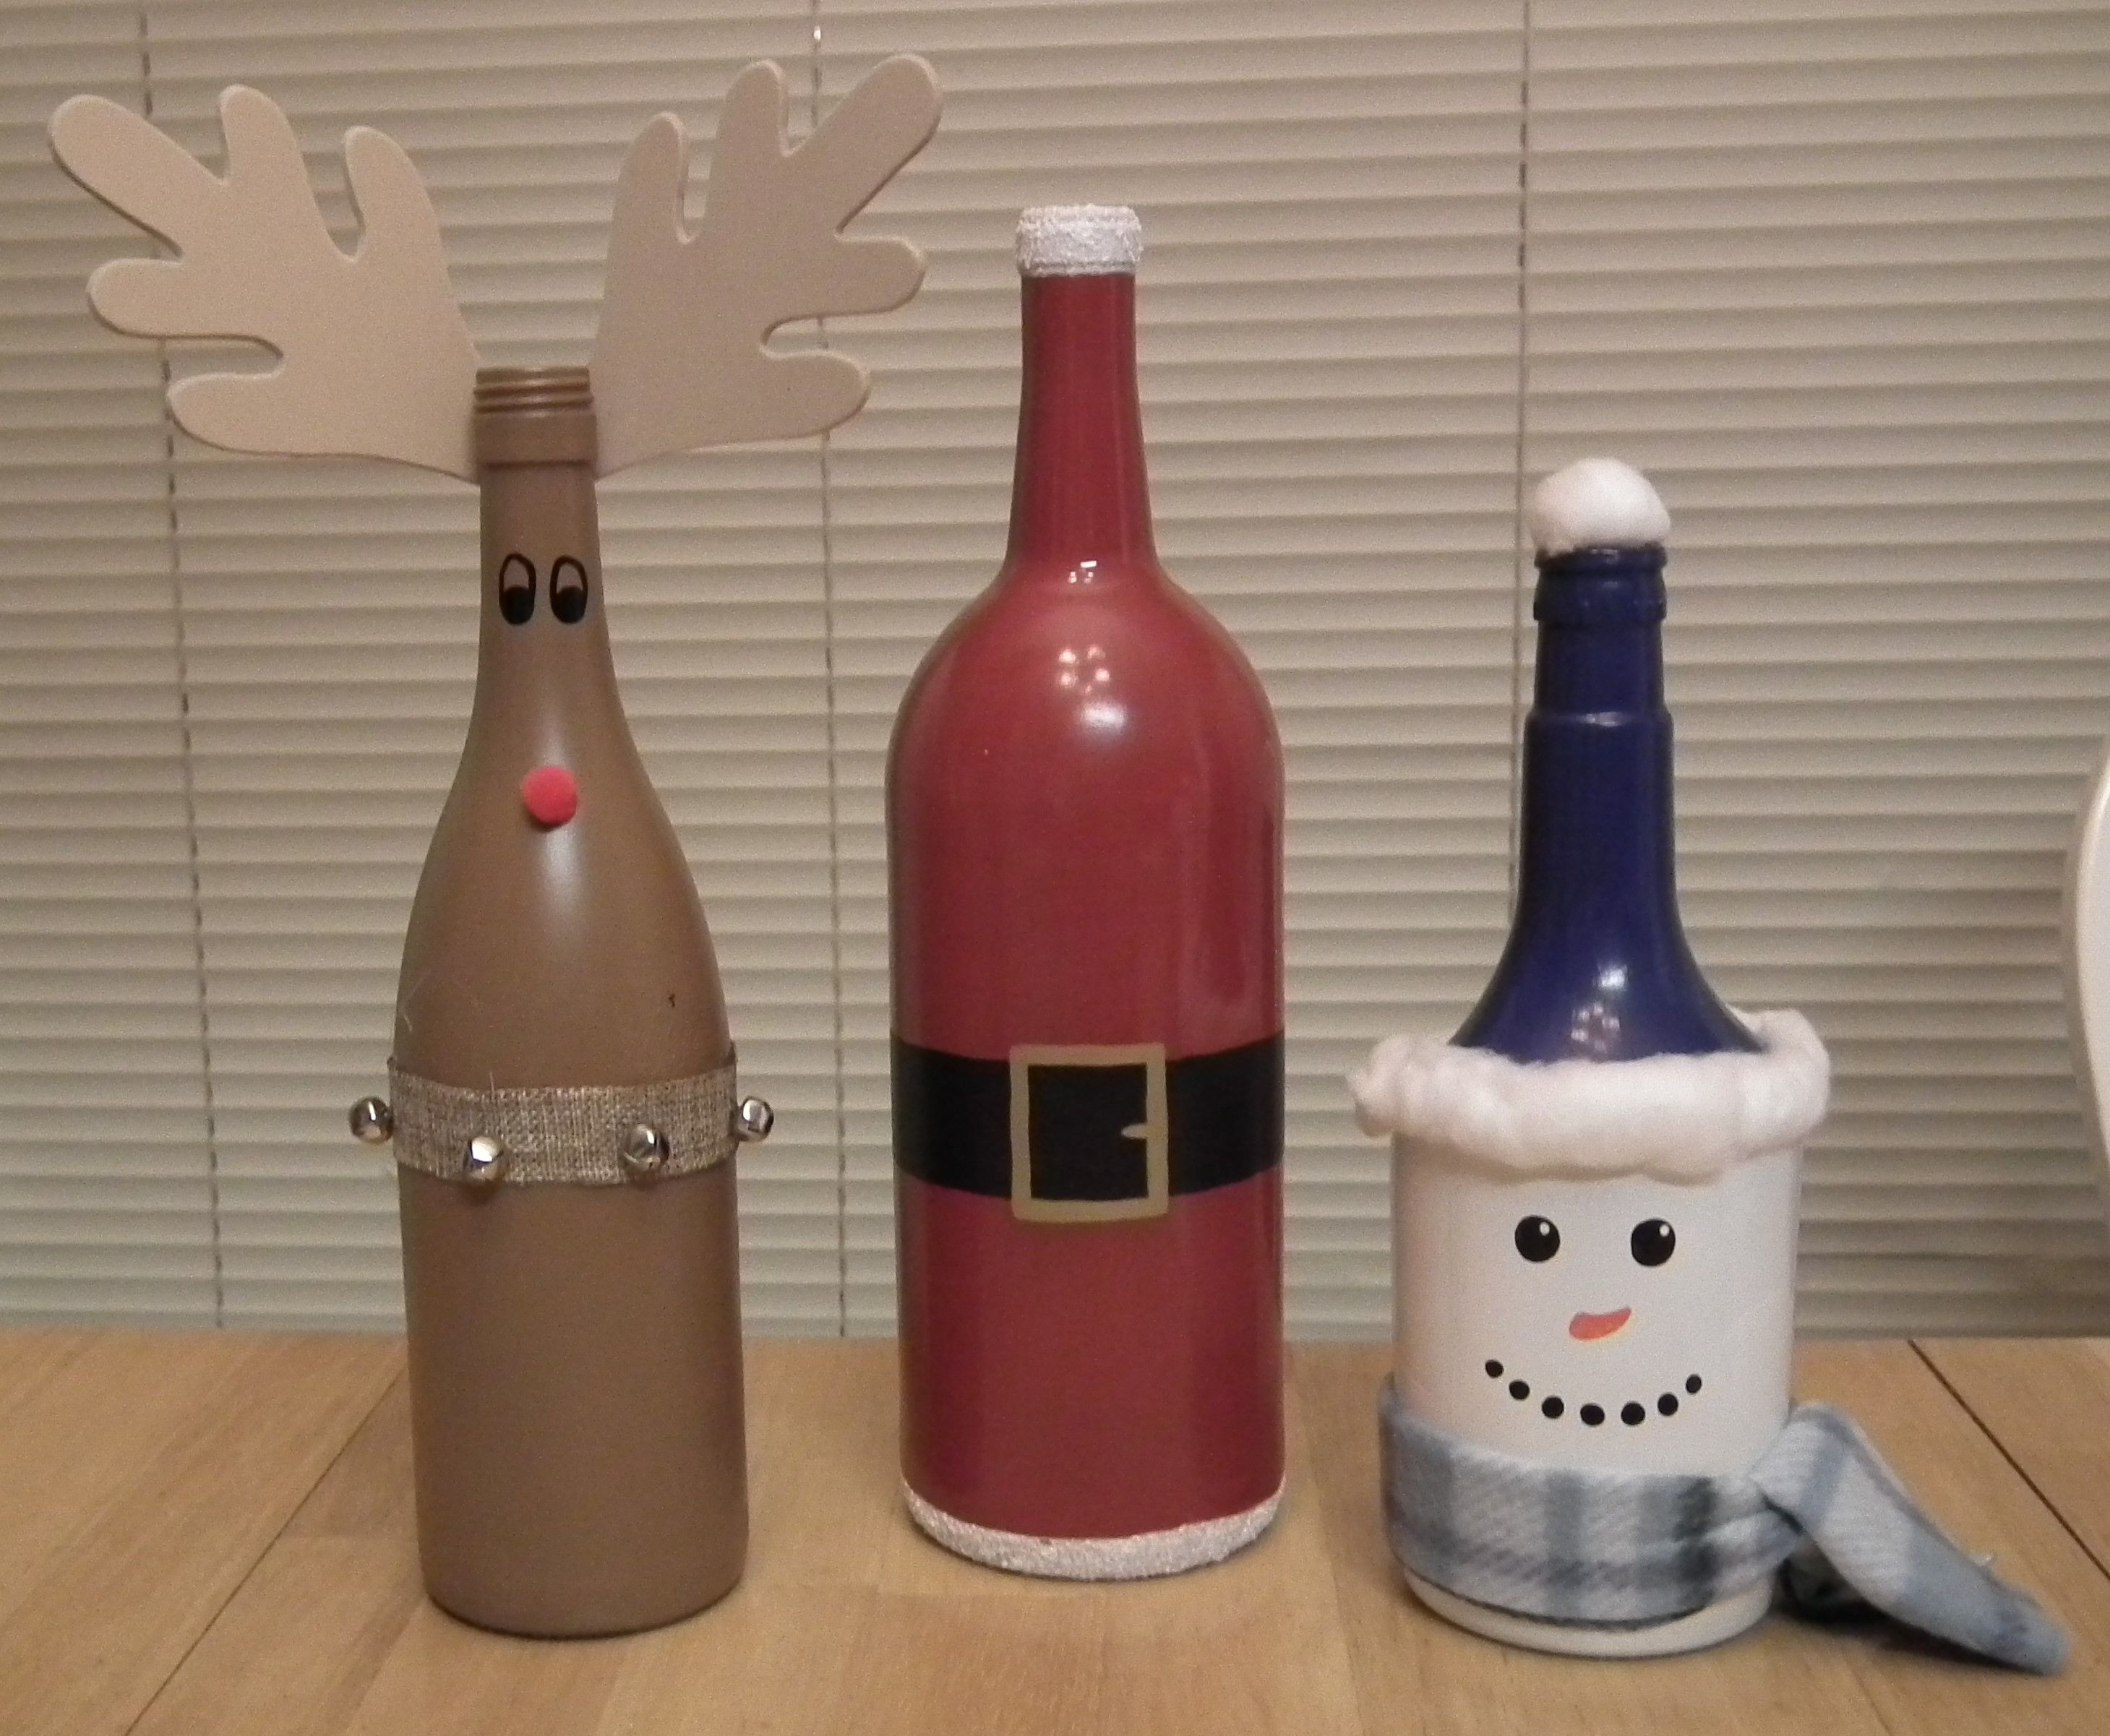 Wine Bottle Decor Reindeer Santa Snowman Bottles  Wine Bottle Crafts  Pinterest